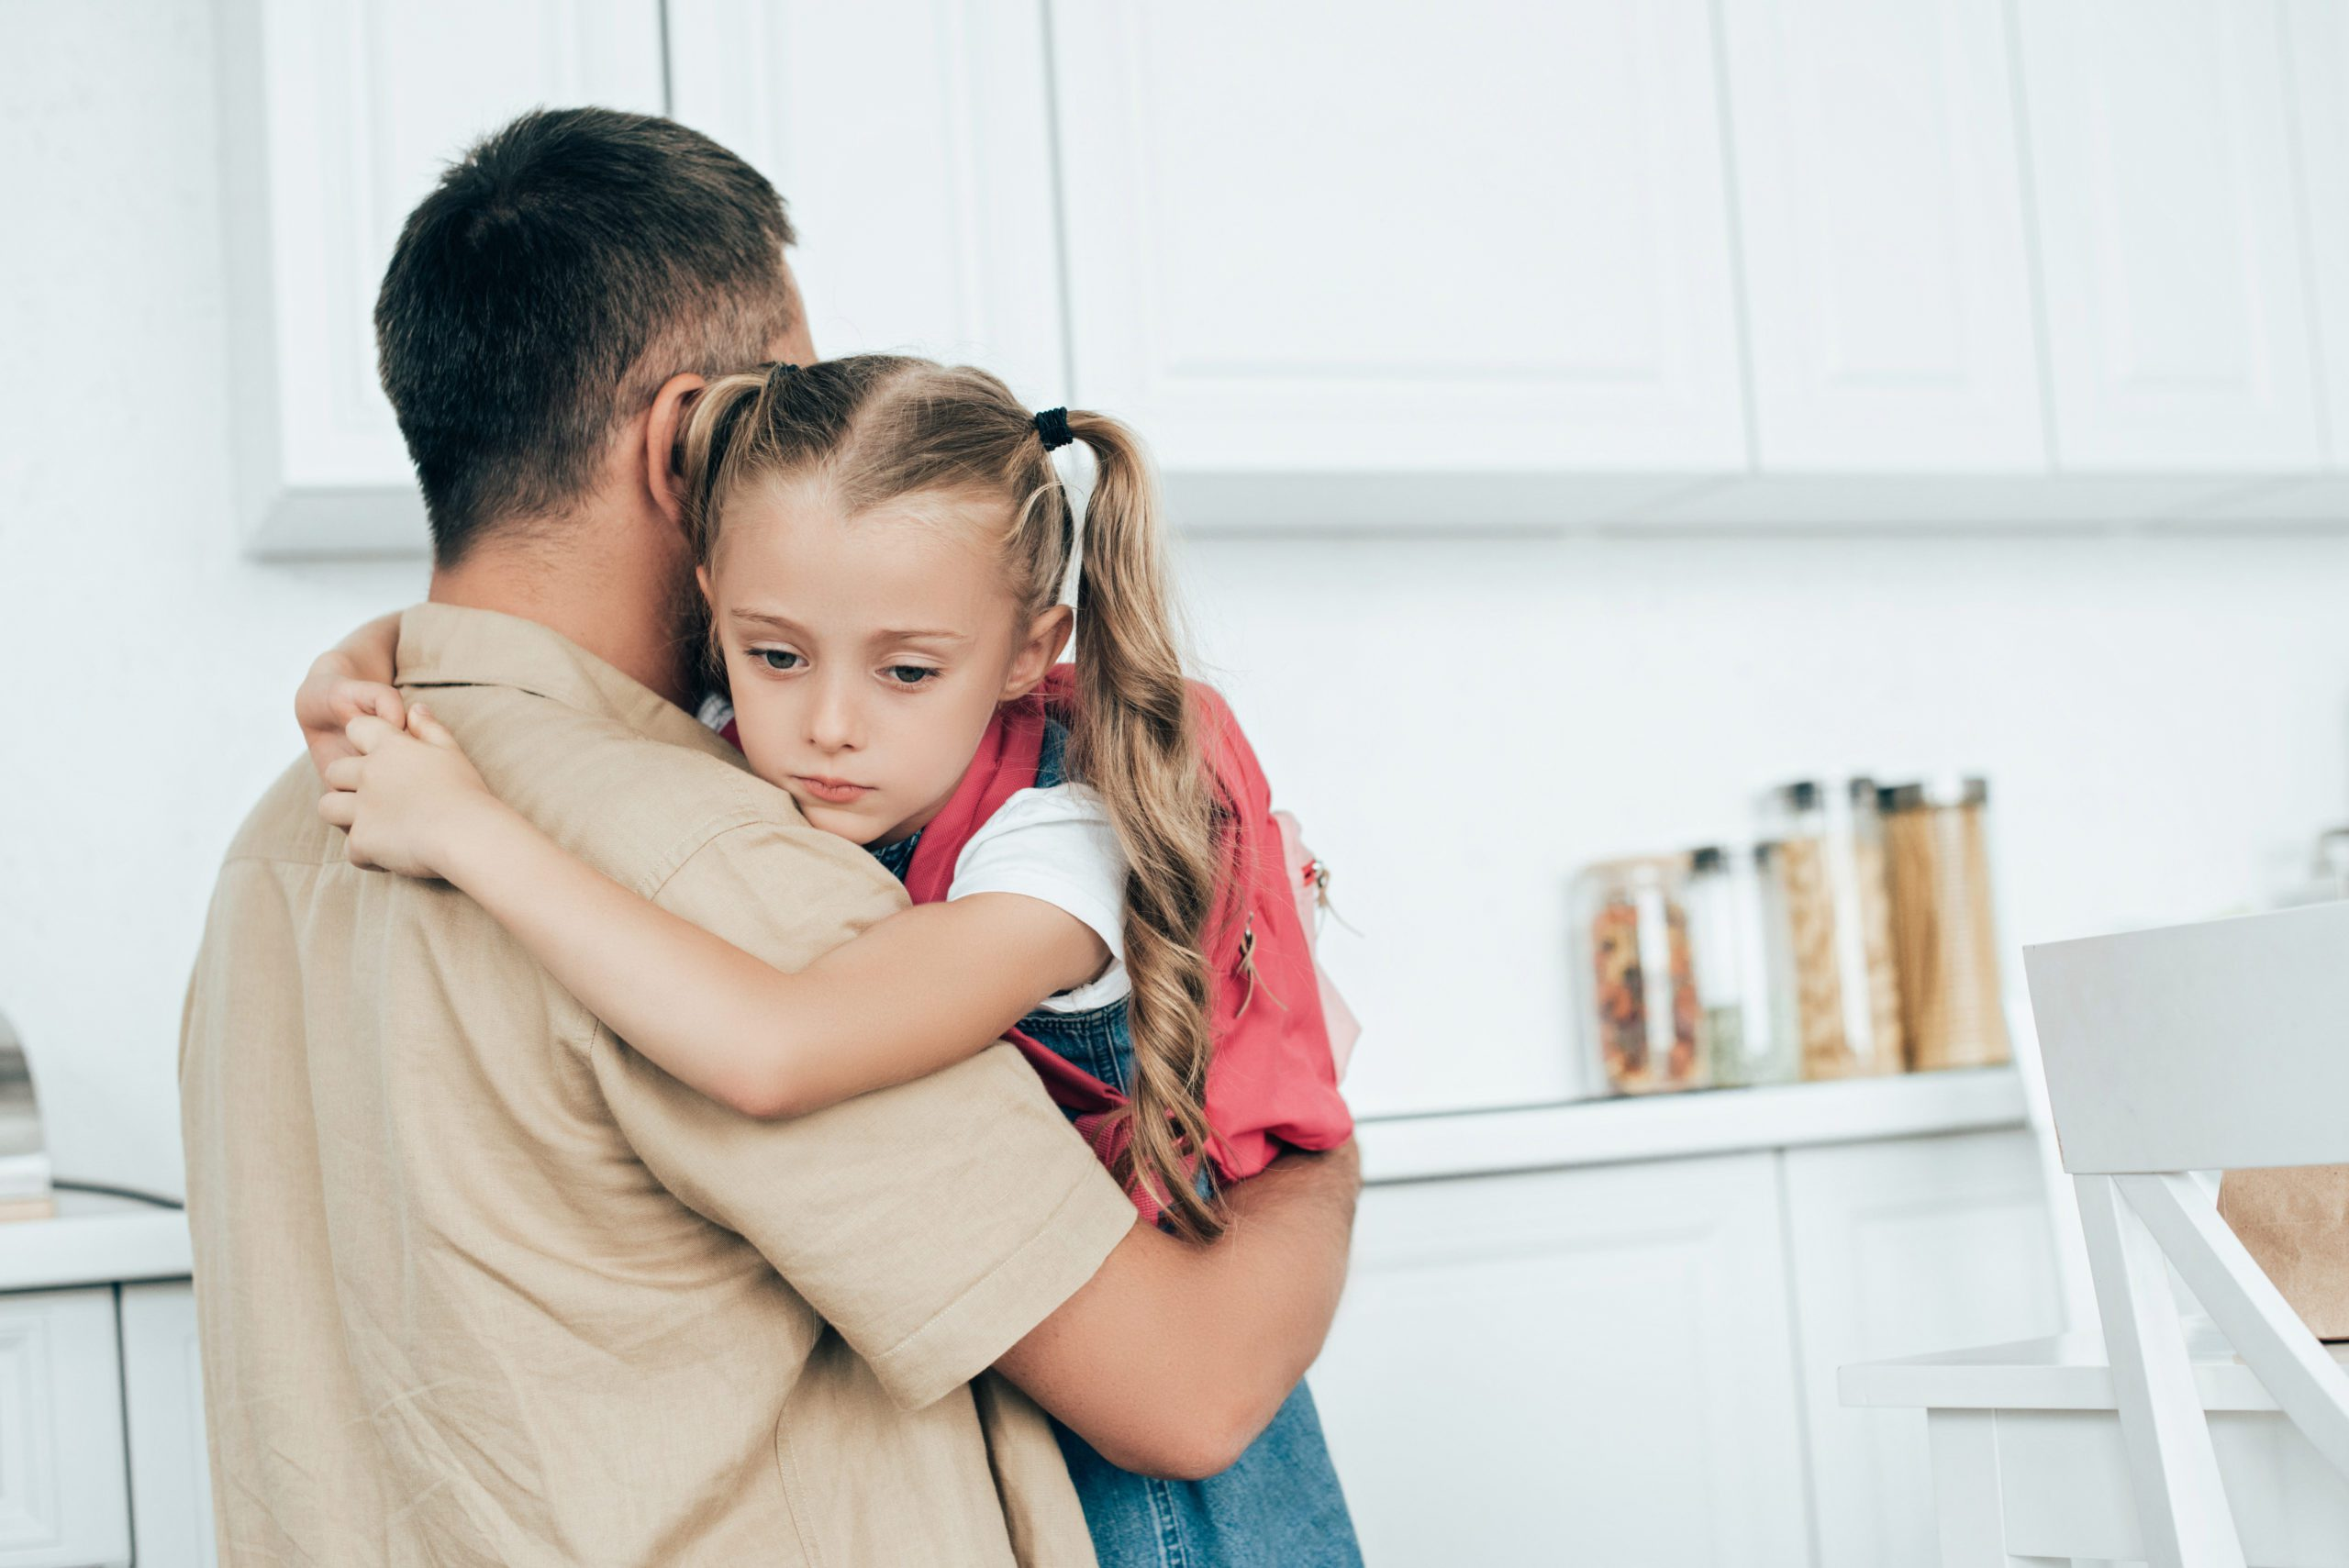 What do you do when your child refuses to go to school?